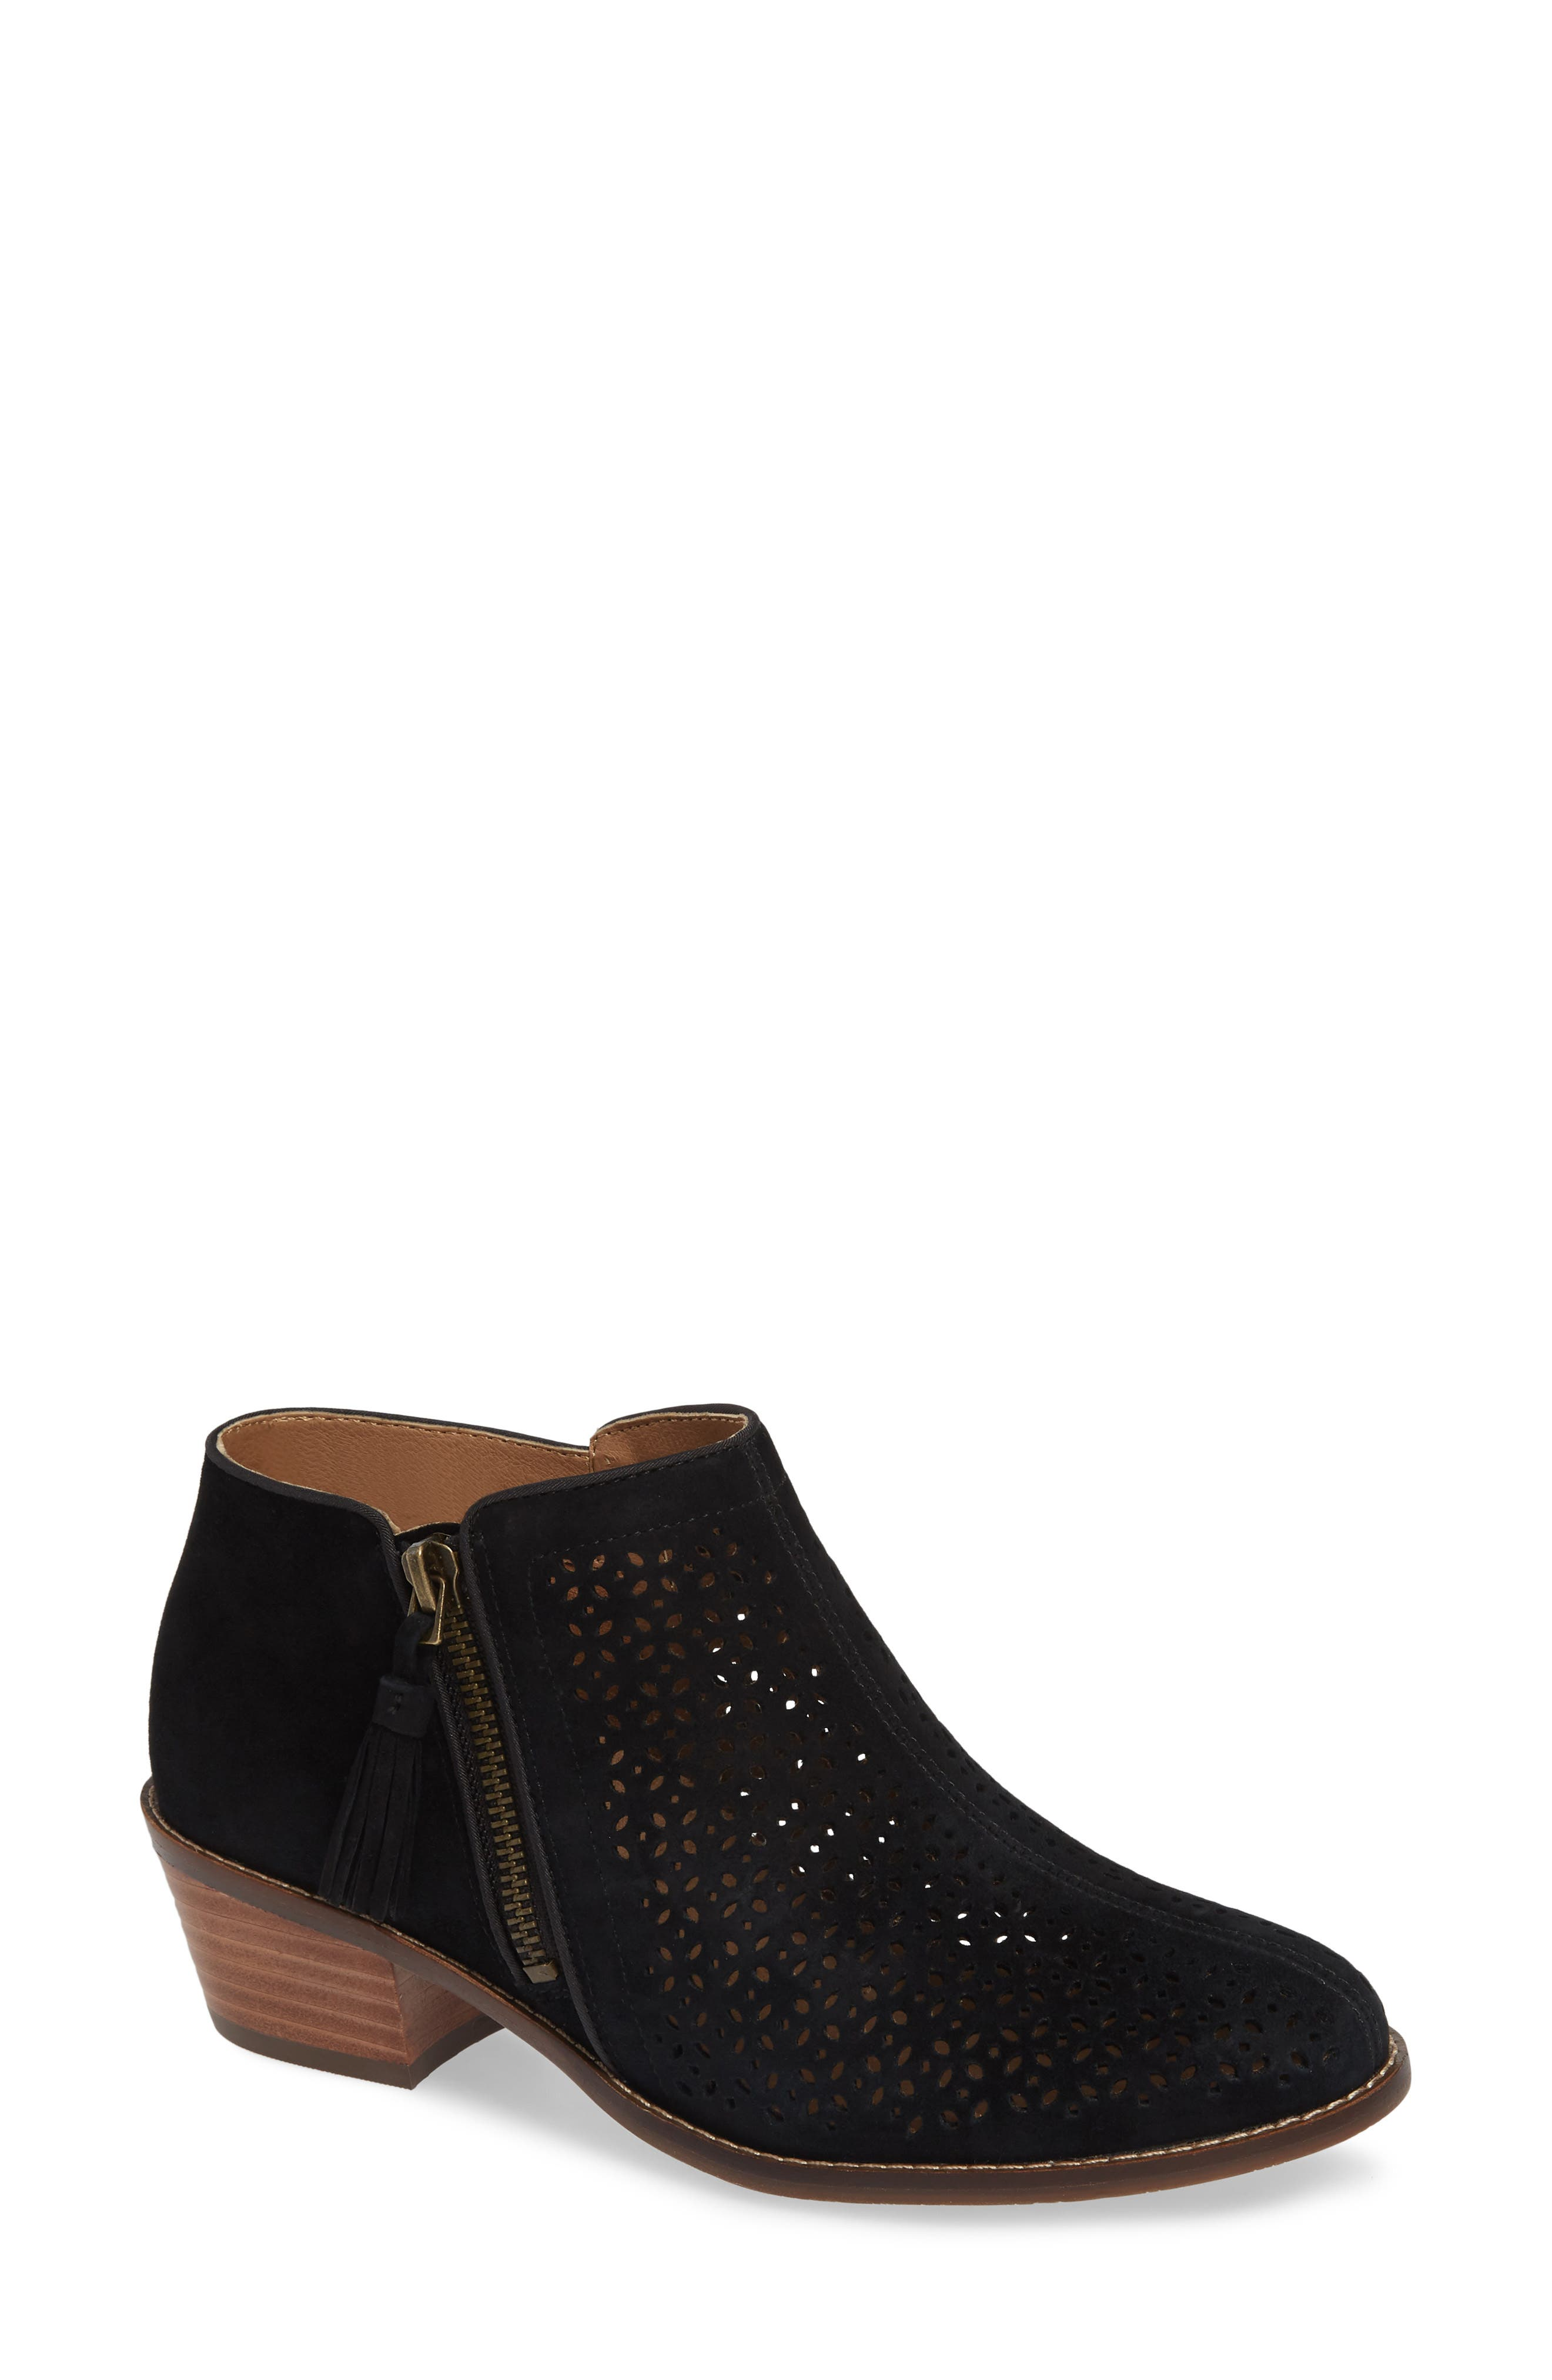 Daytona Perforated Bootie,                         Main,                         color, BLACK SUEDE